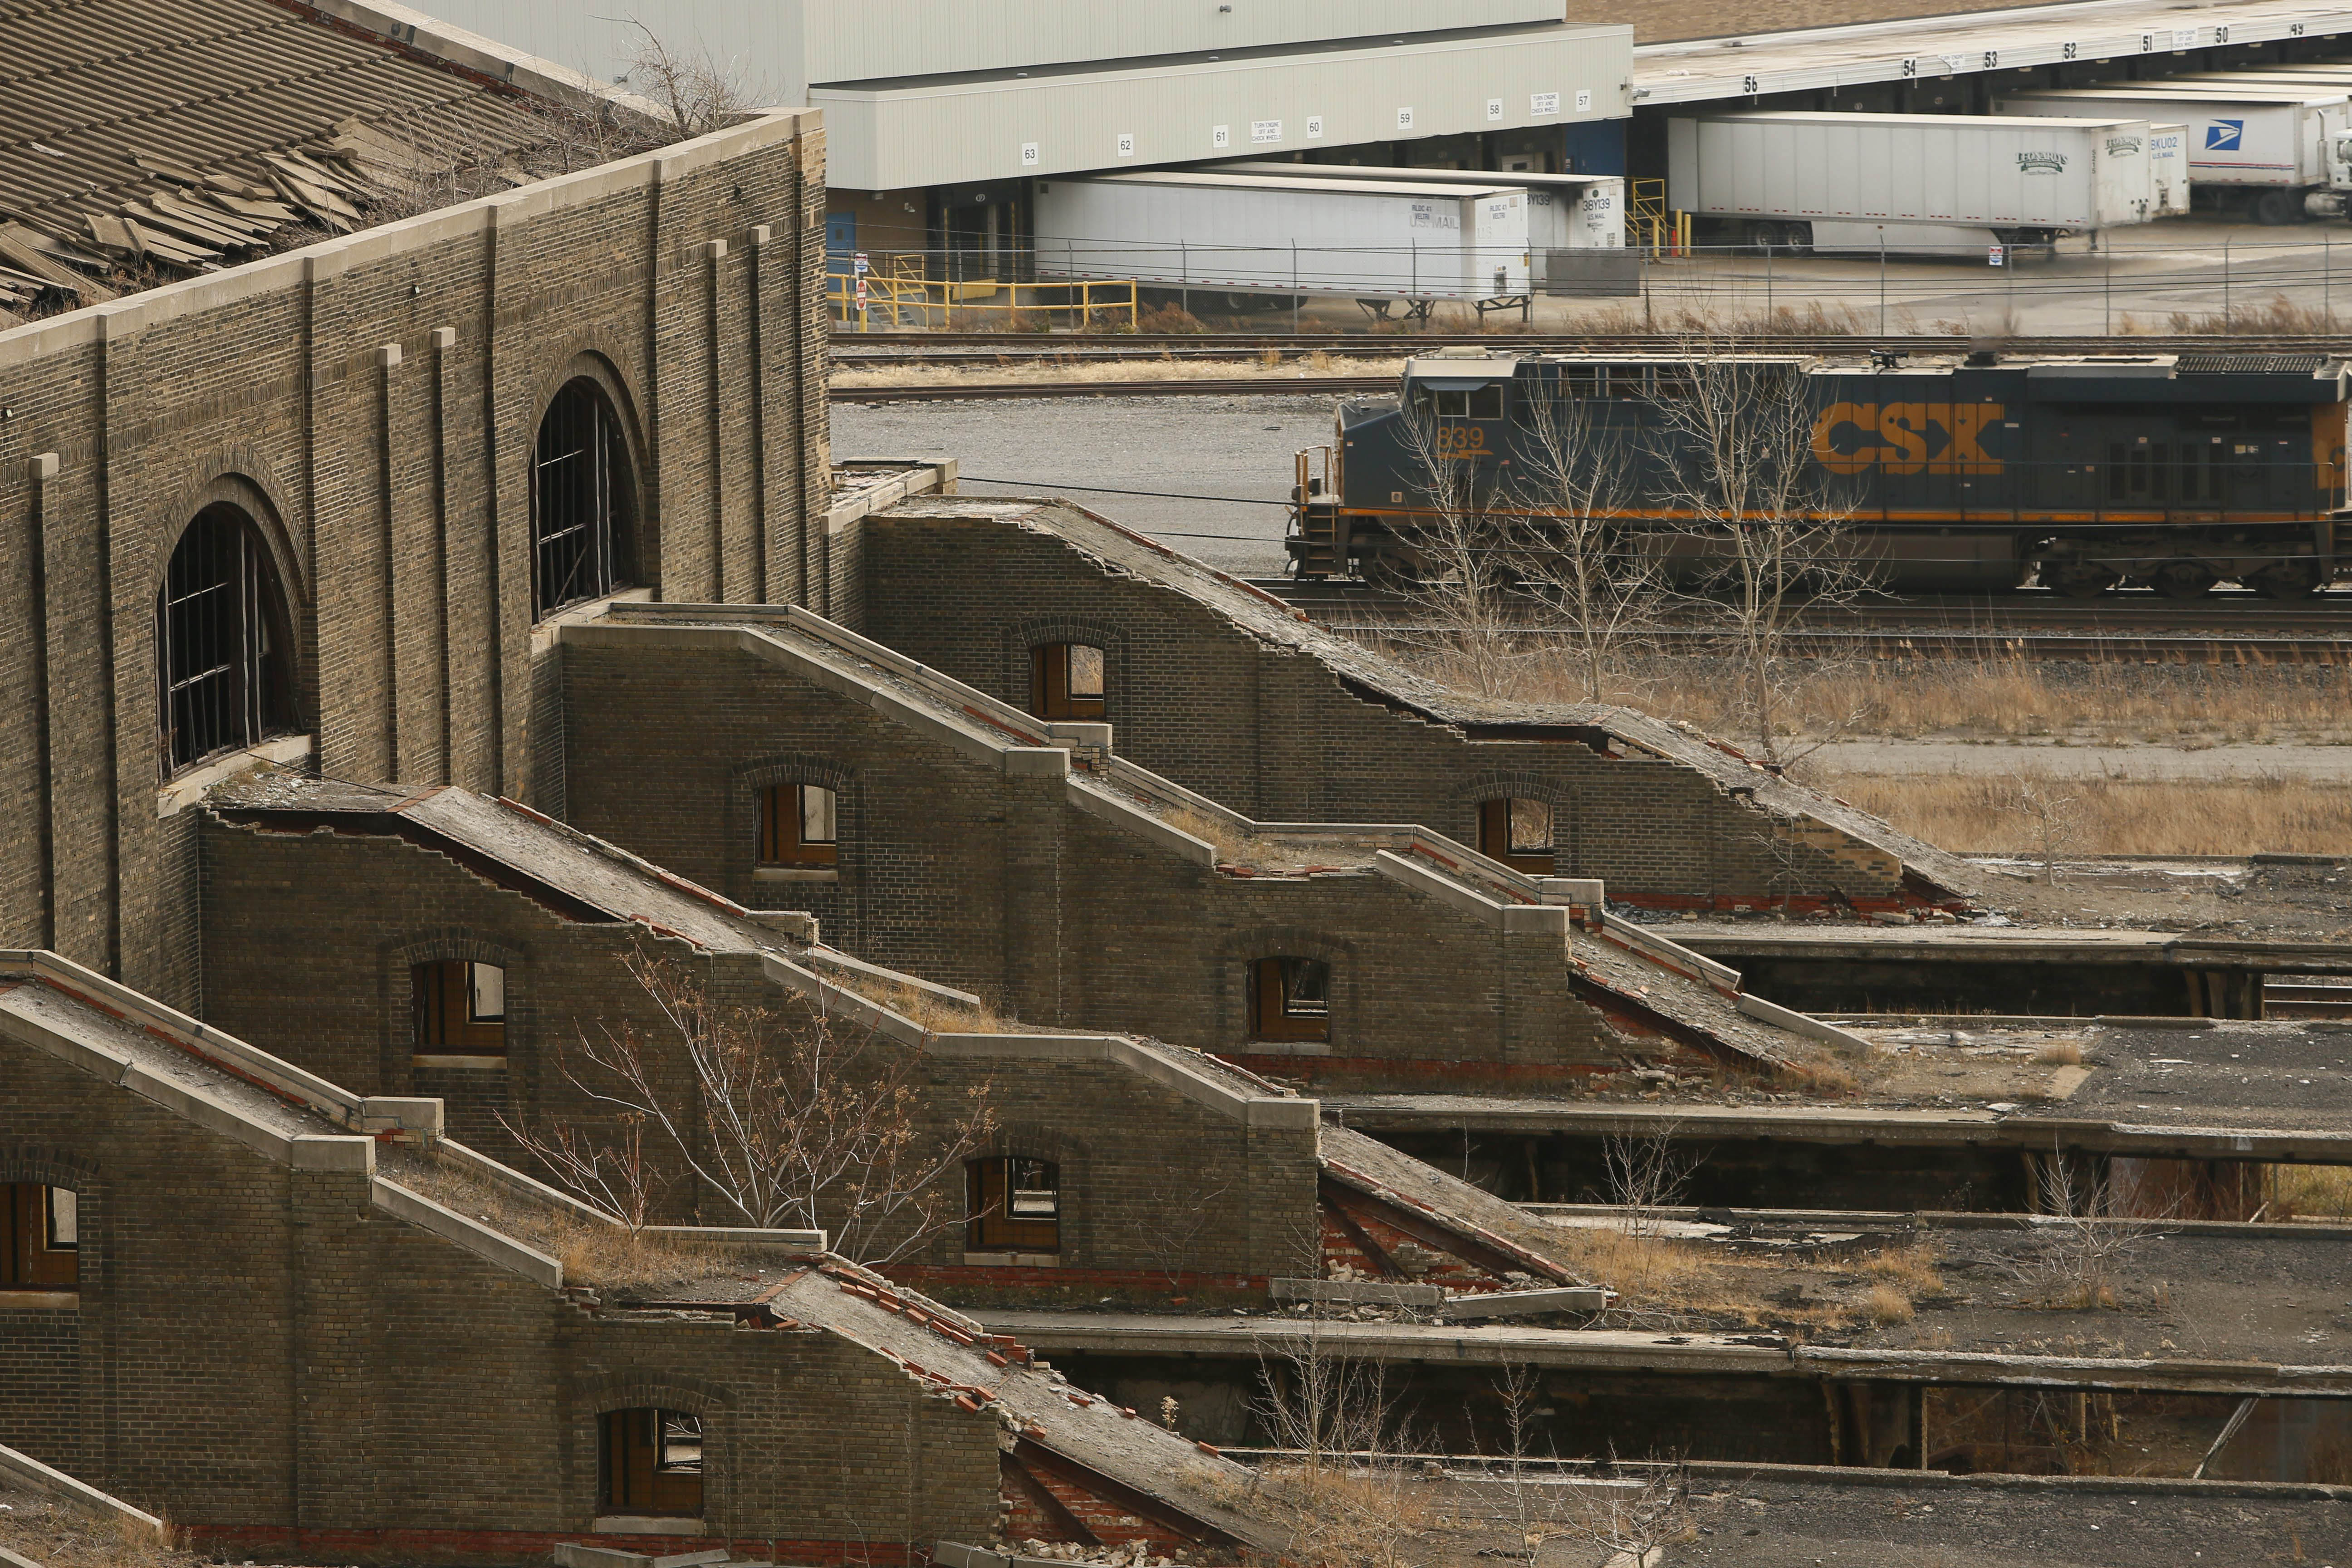 A CSX train passes by the old passenger platforms at Buffalo's Central Terminal. (Derek Gee/News file photo)